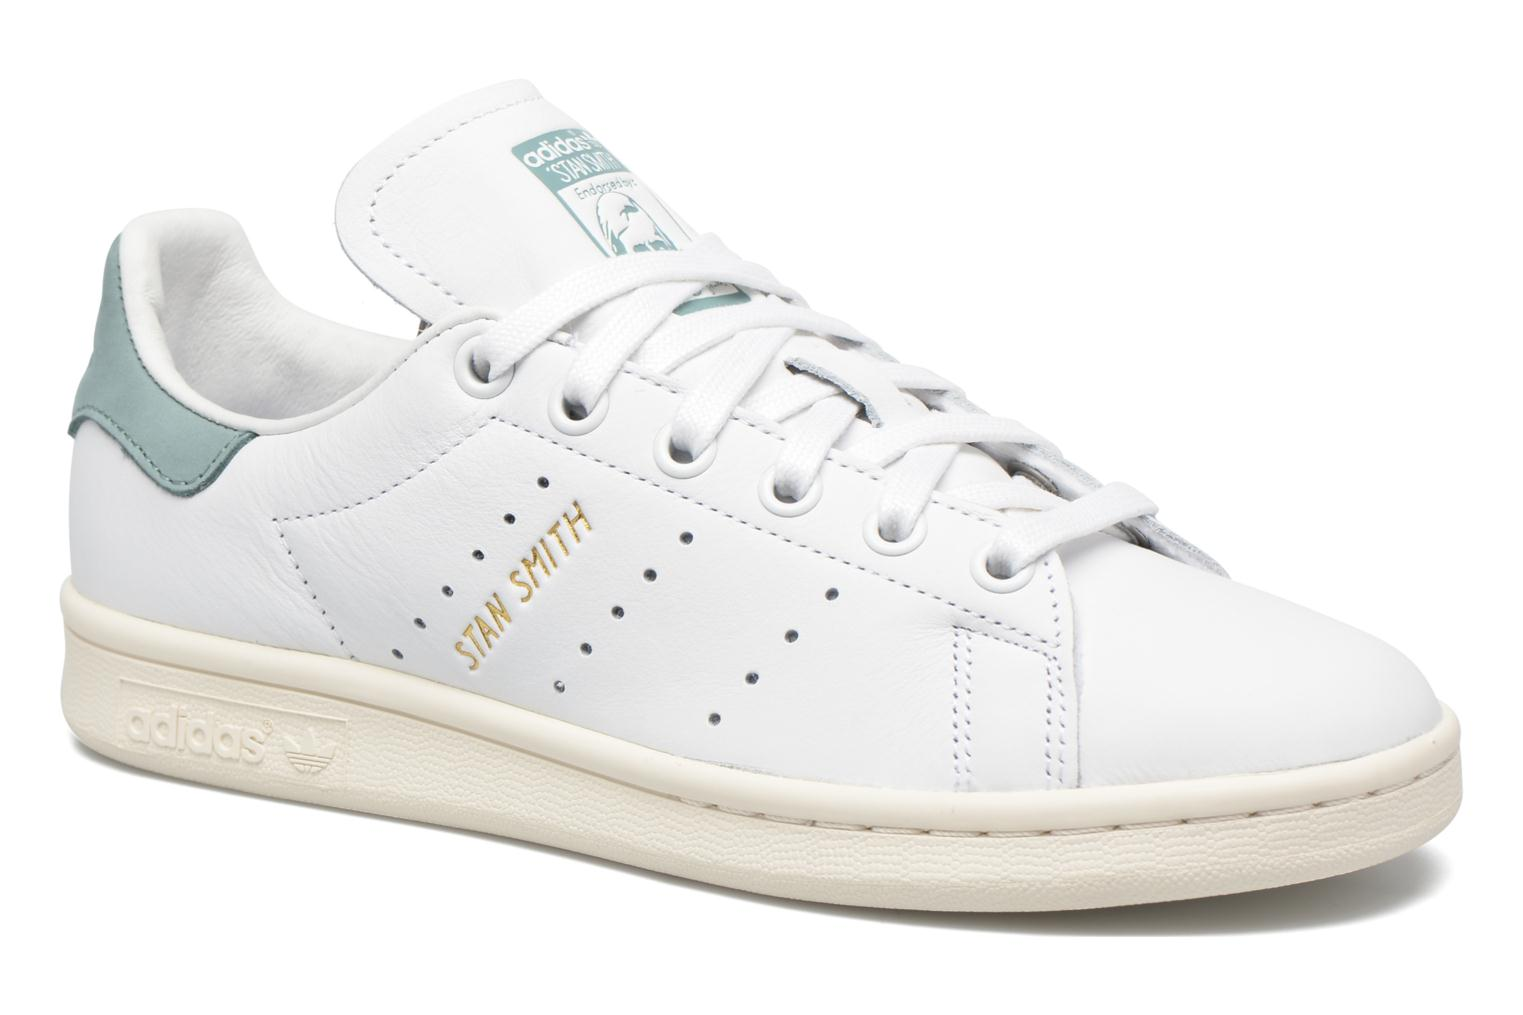 Stan Smith W Ftwbla/Ftwbla/Acivap